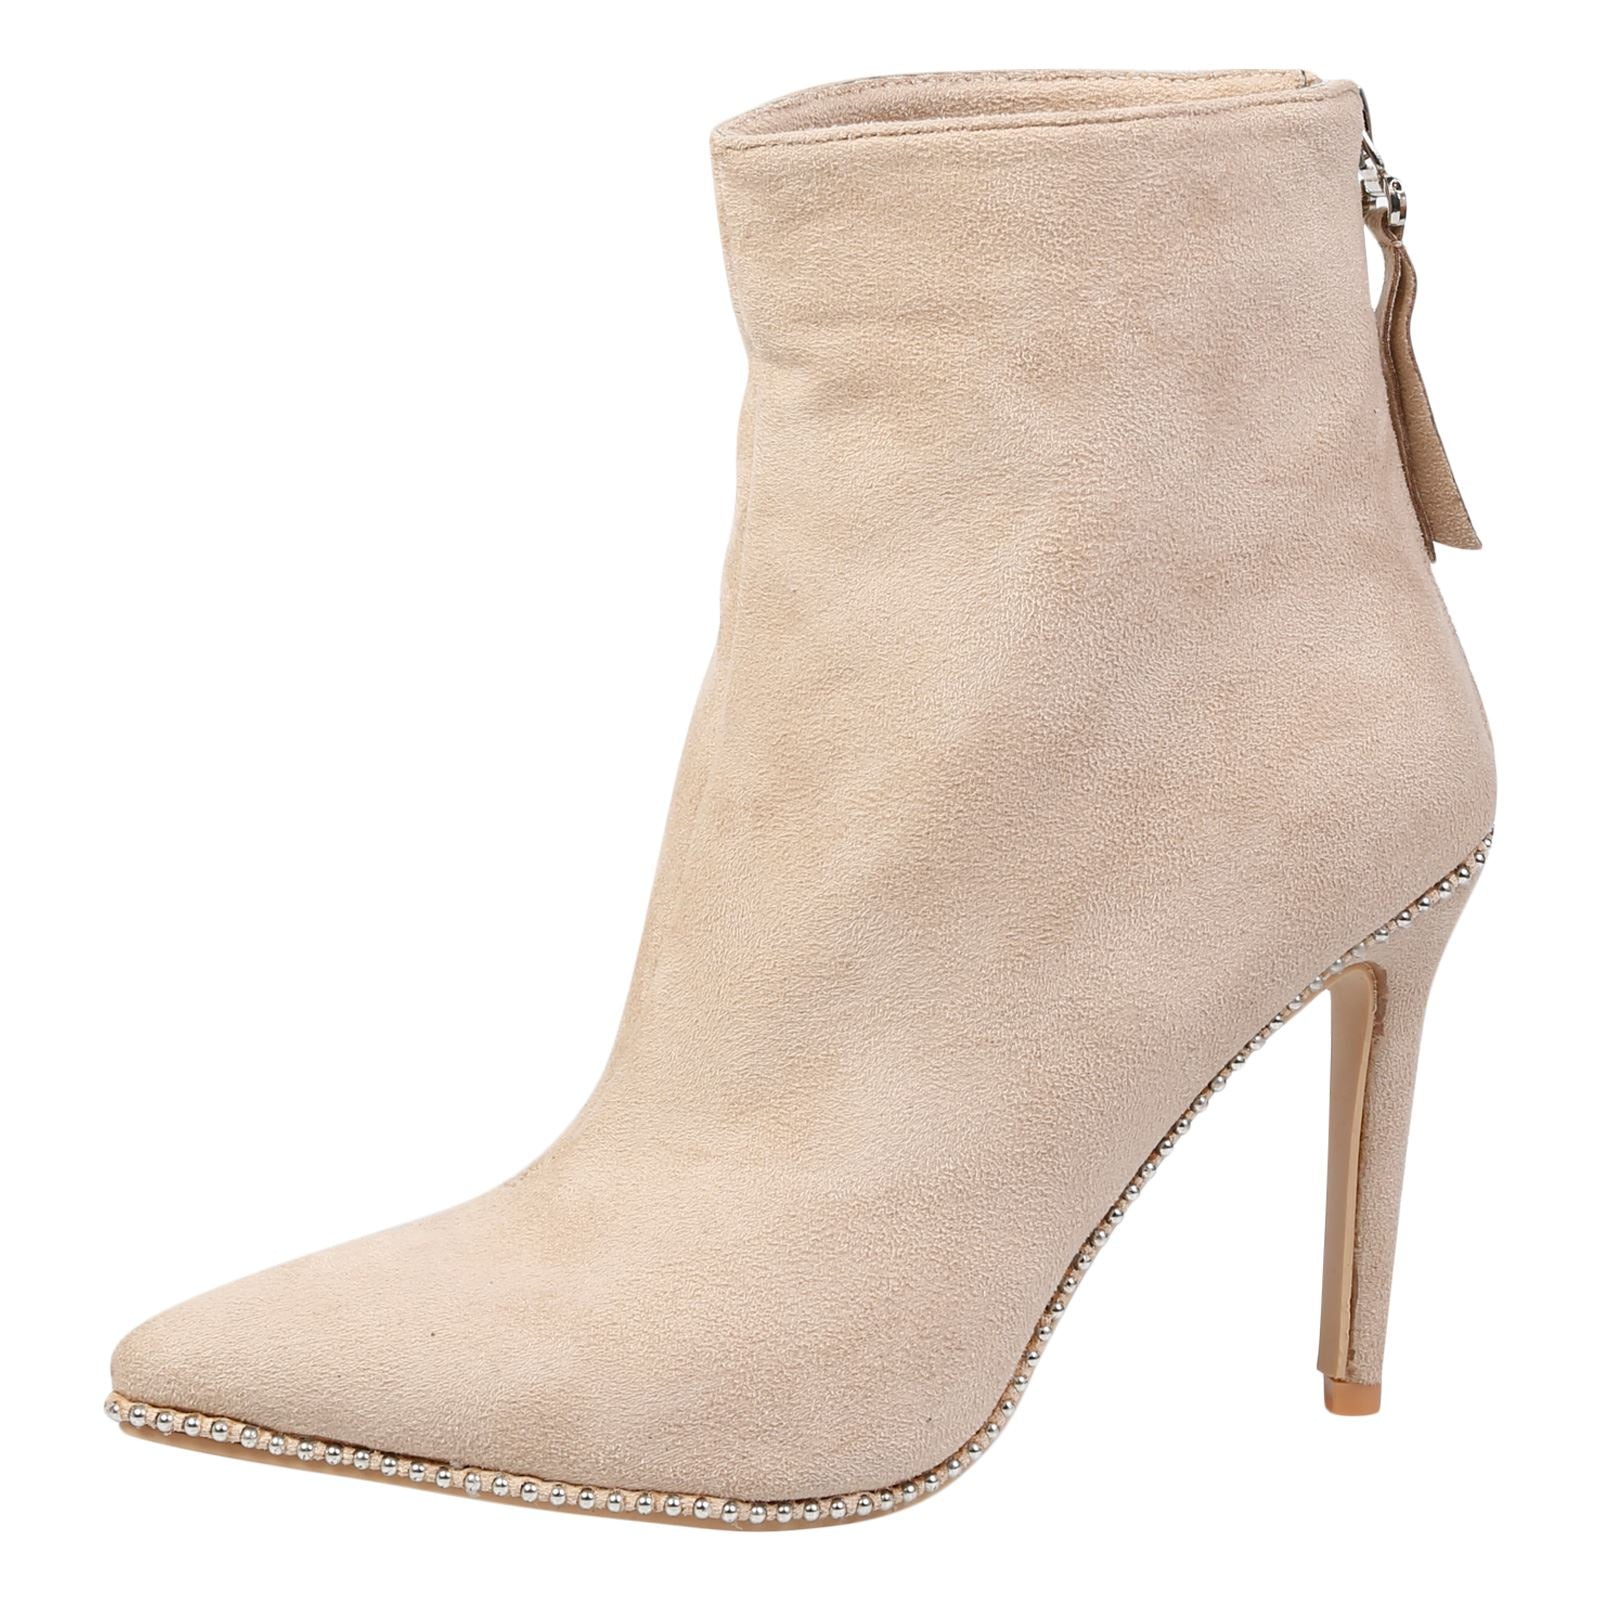 Emmie Stilleto Heel Ankle Boots in Nude - Feet First Fashion